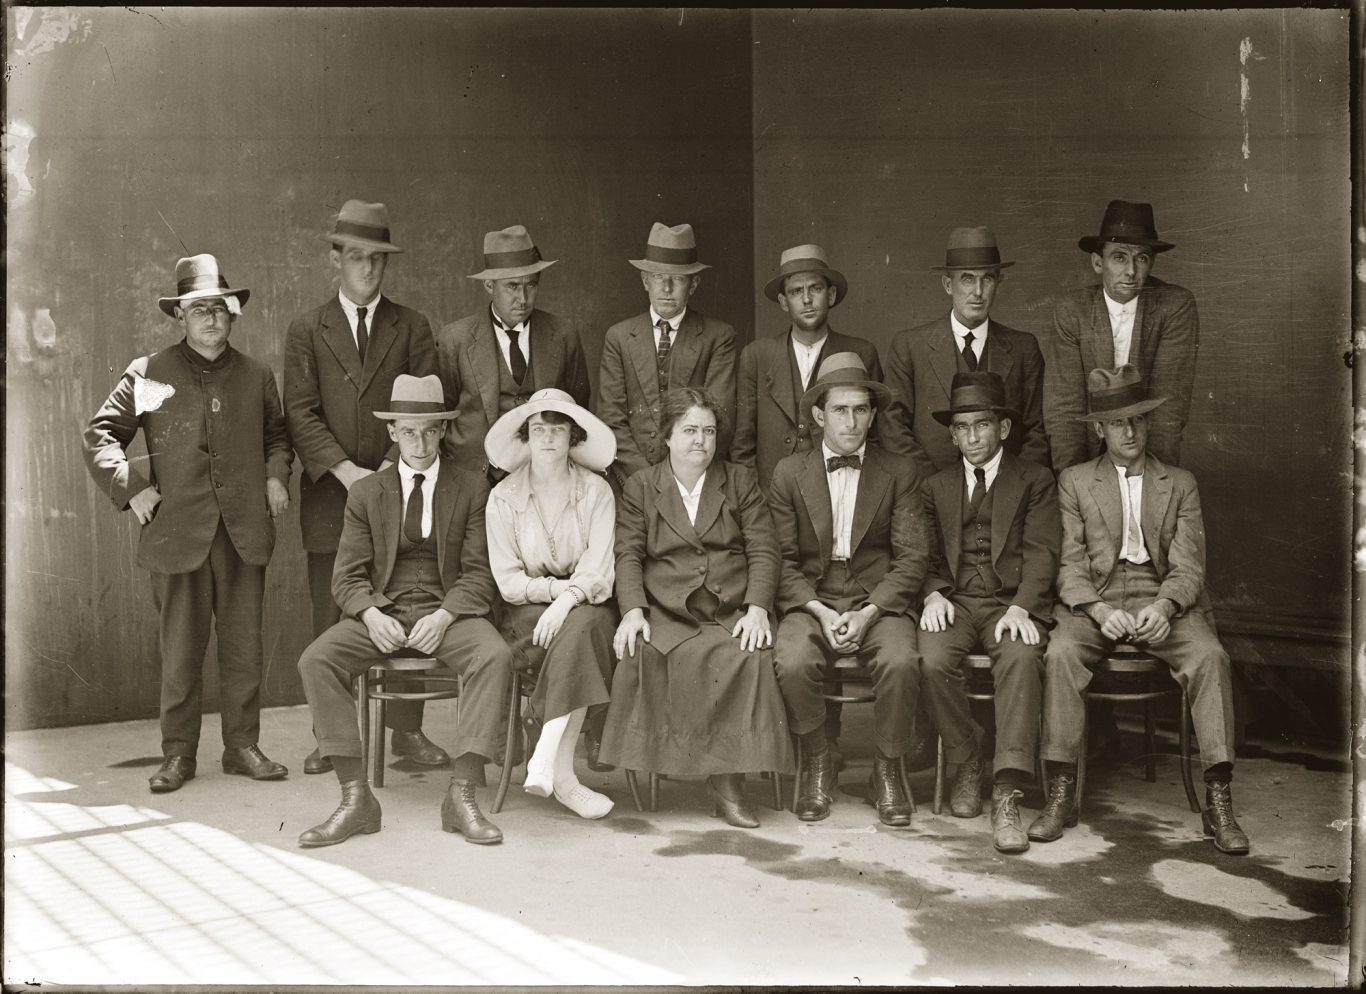 Black and white photo - group mugshot of men and women seated and standing.